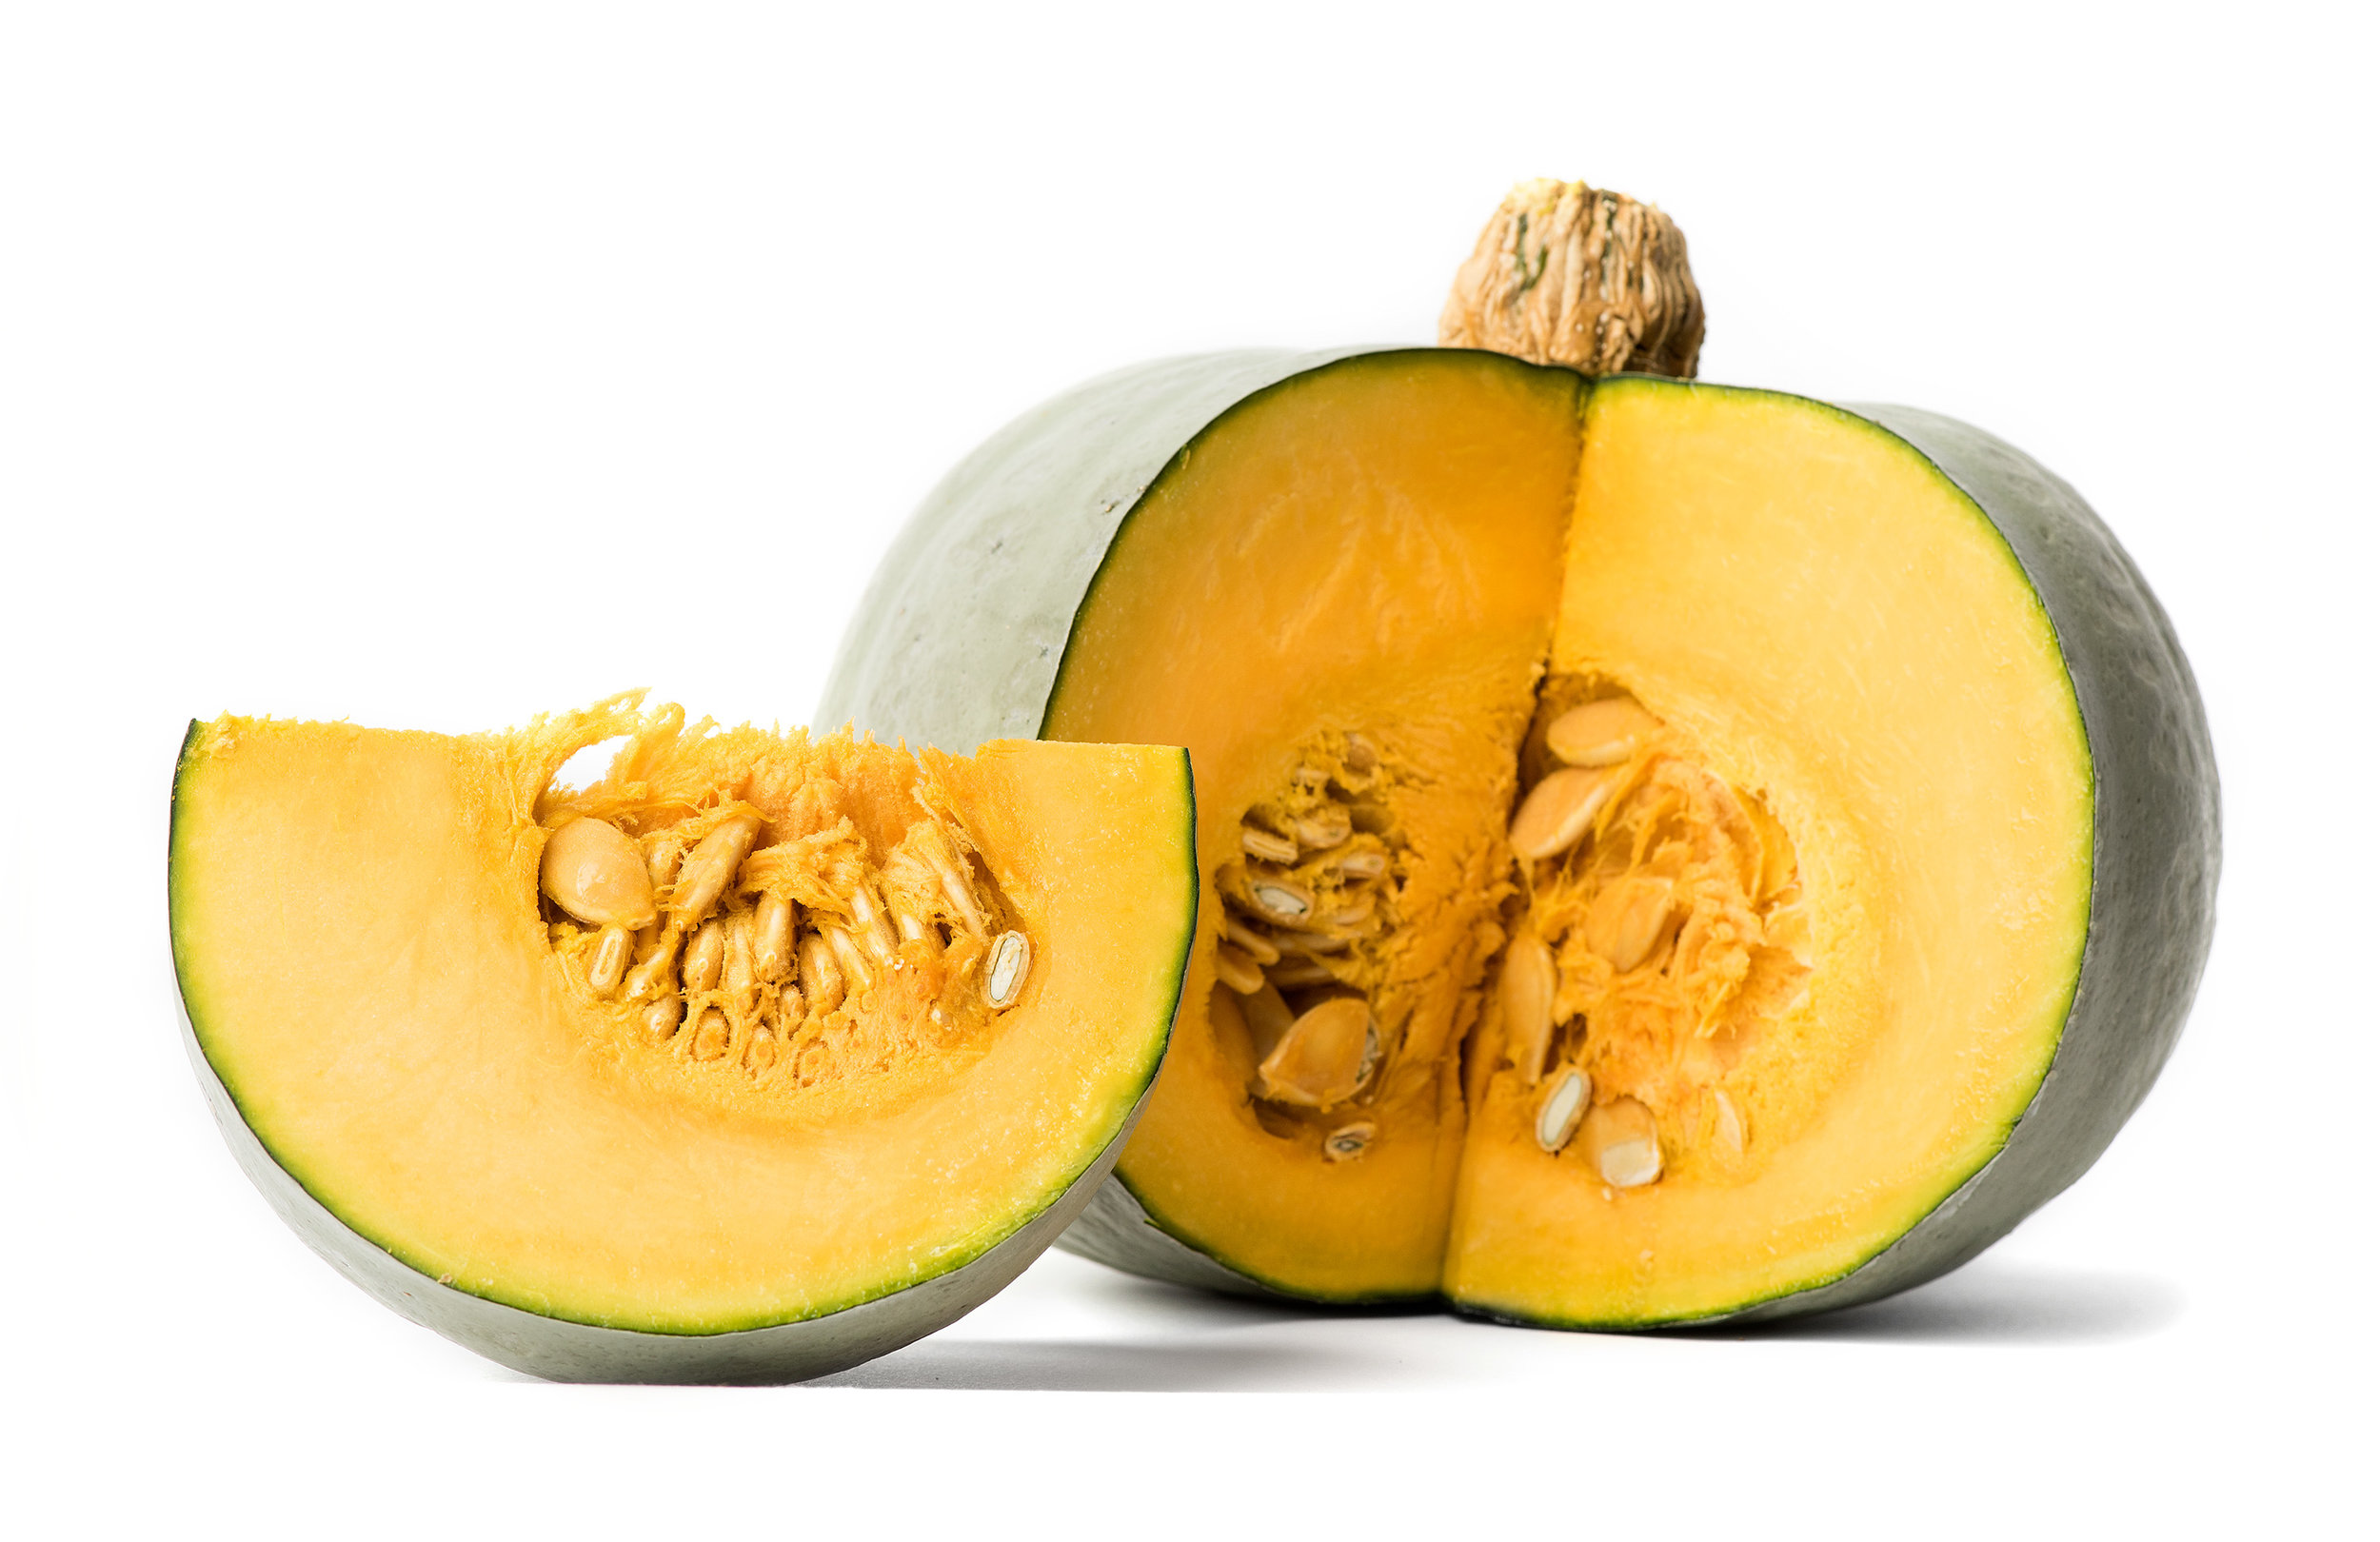 In December through March,Winter Sweet would be an excellent squash for this dish.